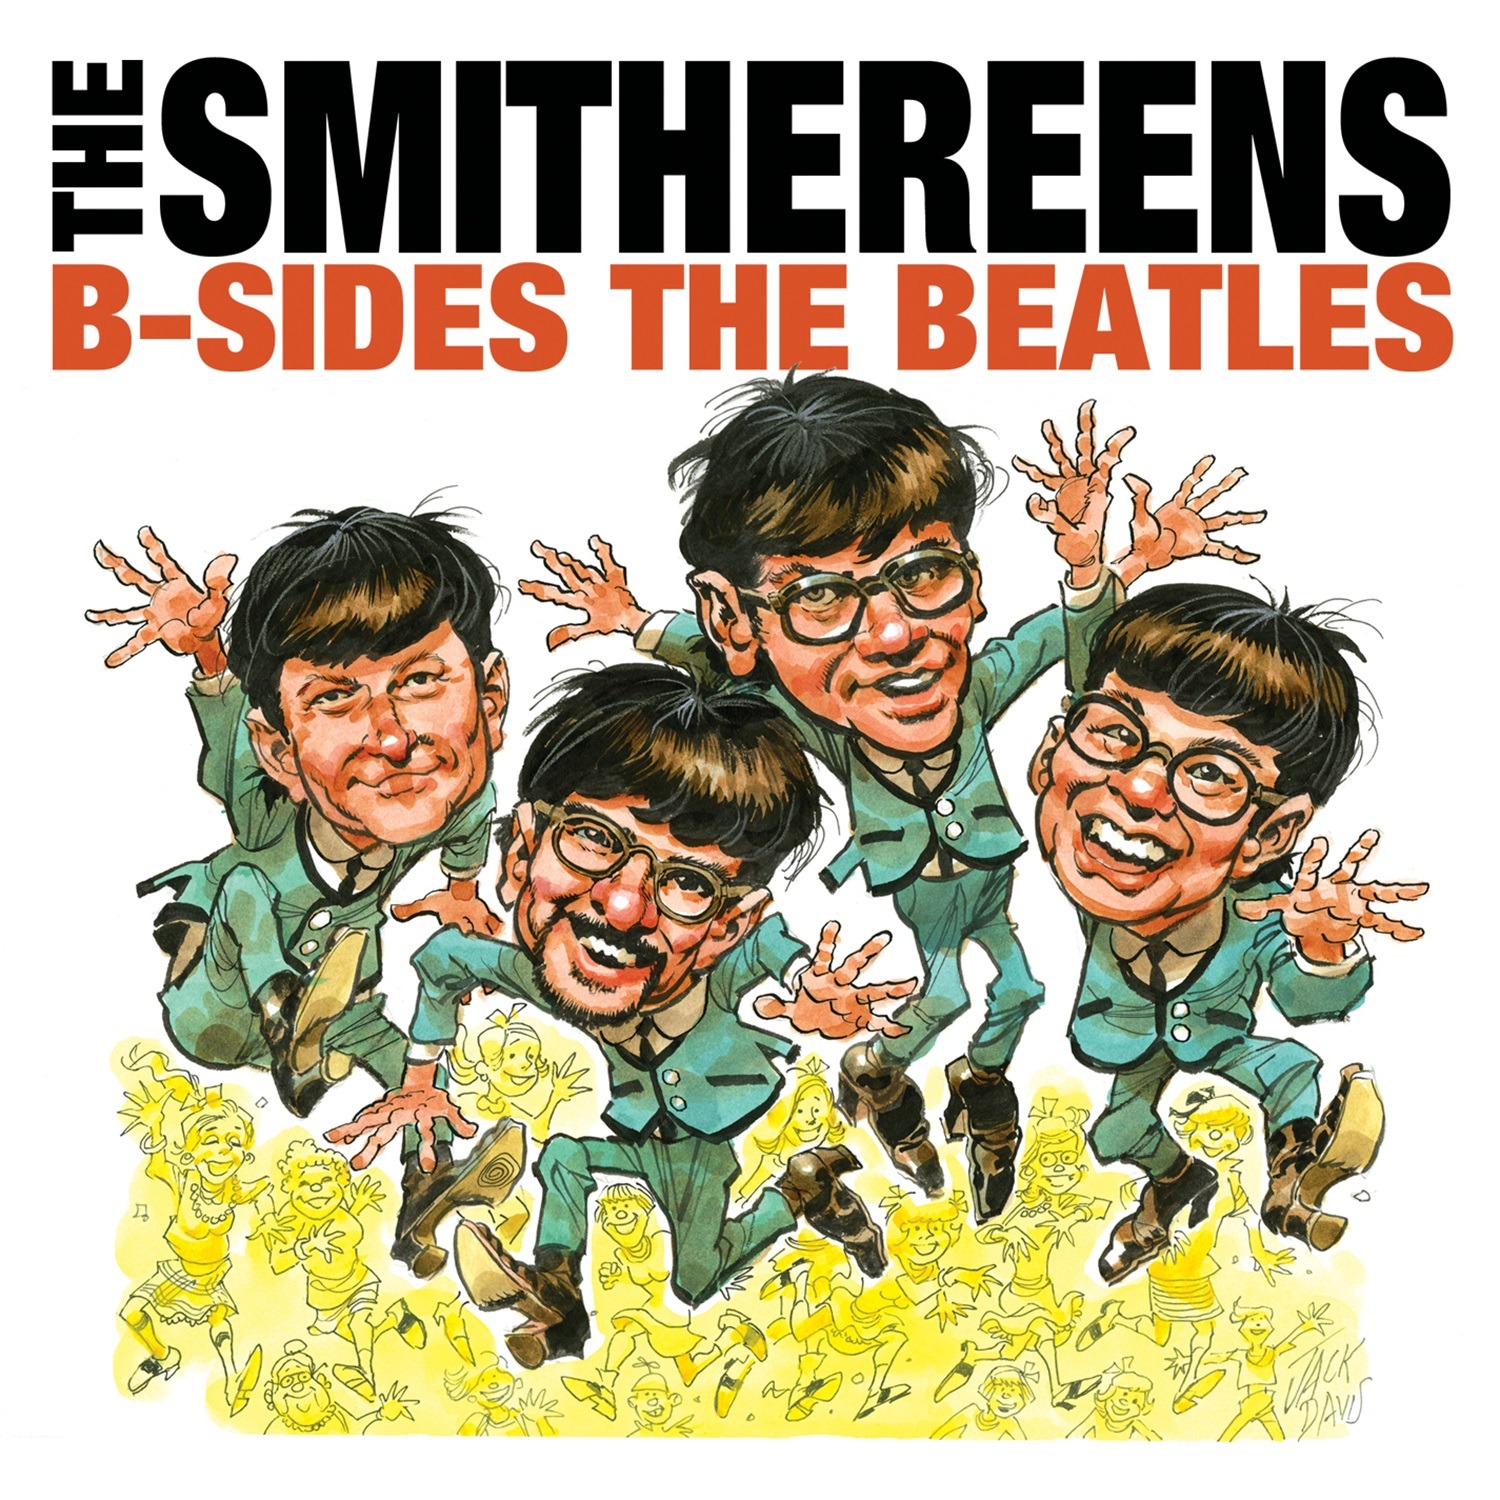 The Smithereens - B-Sides The Beatles